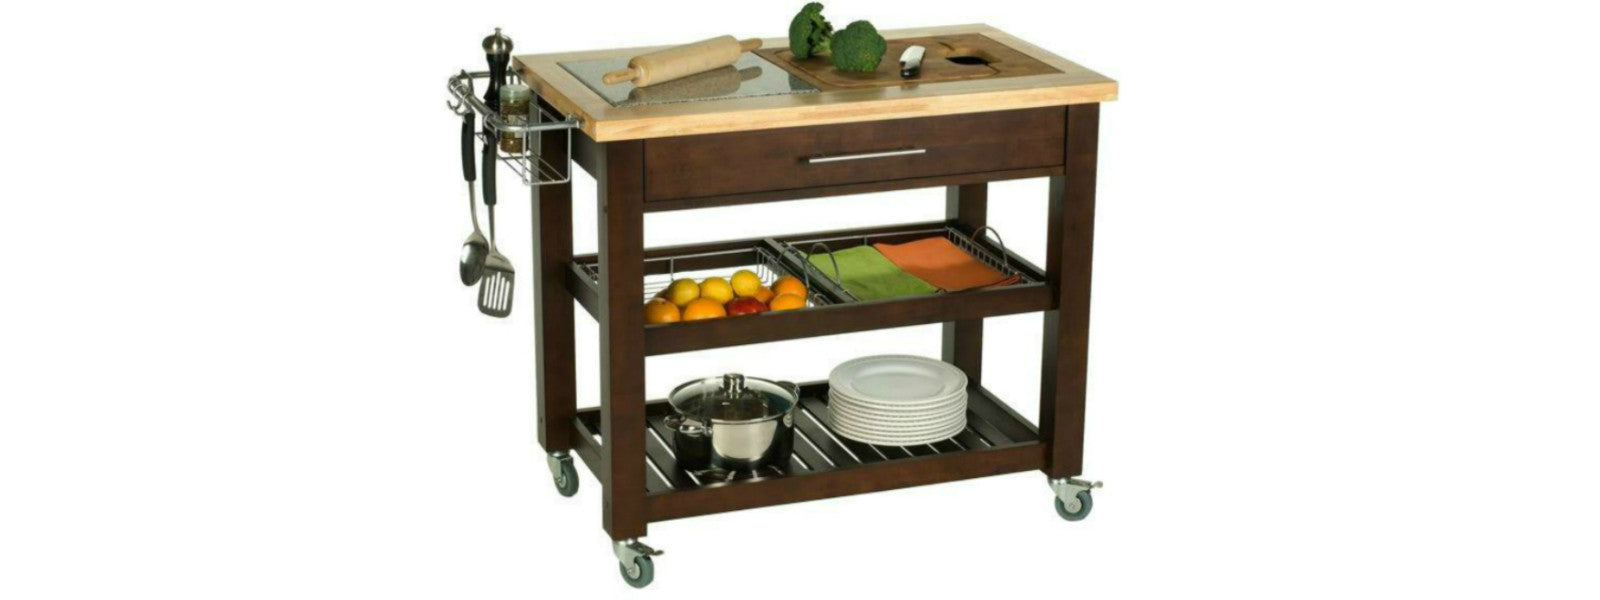 Chris & Chris Chef Series Kitchen Cart